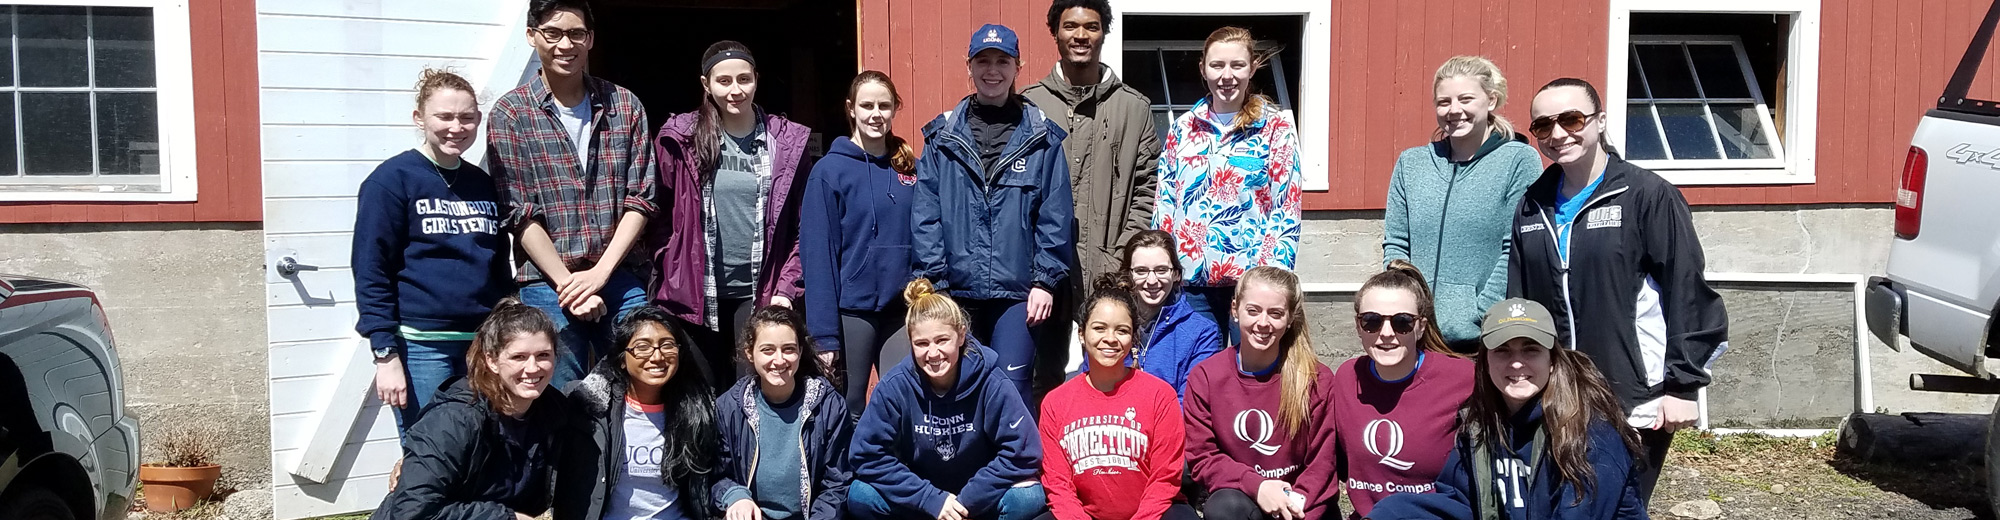 Massaro Farm volunteers